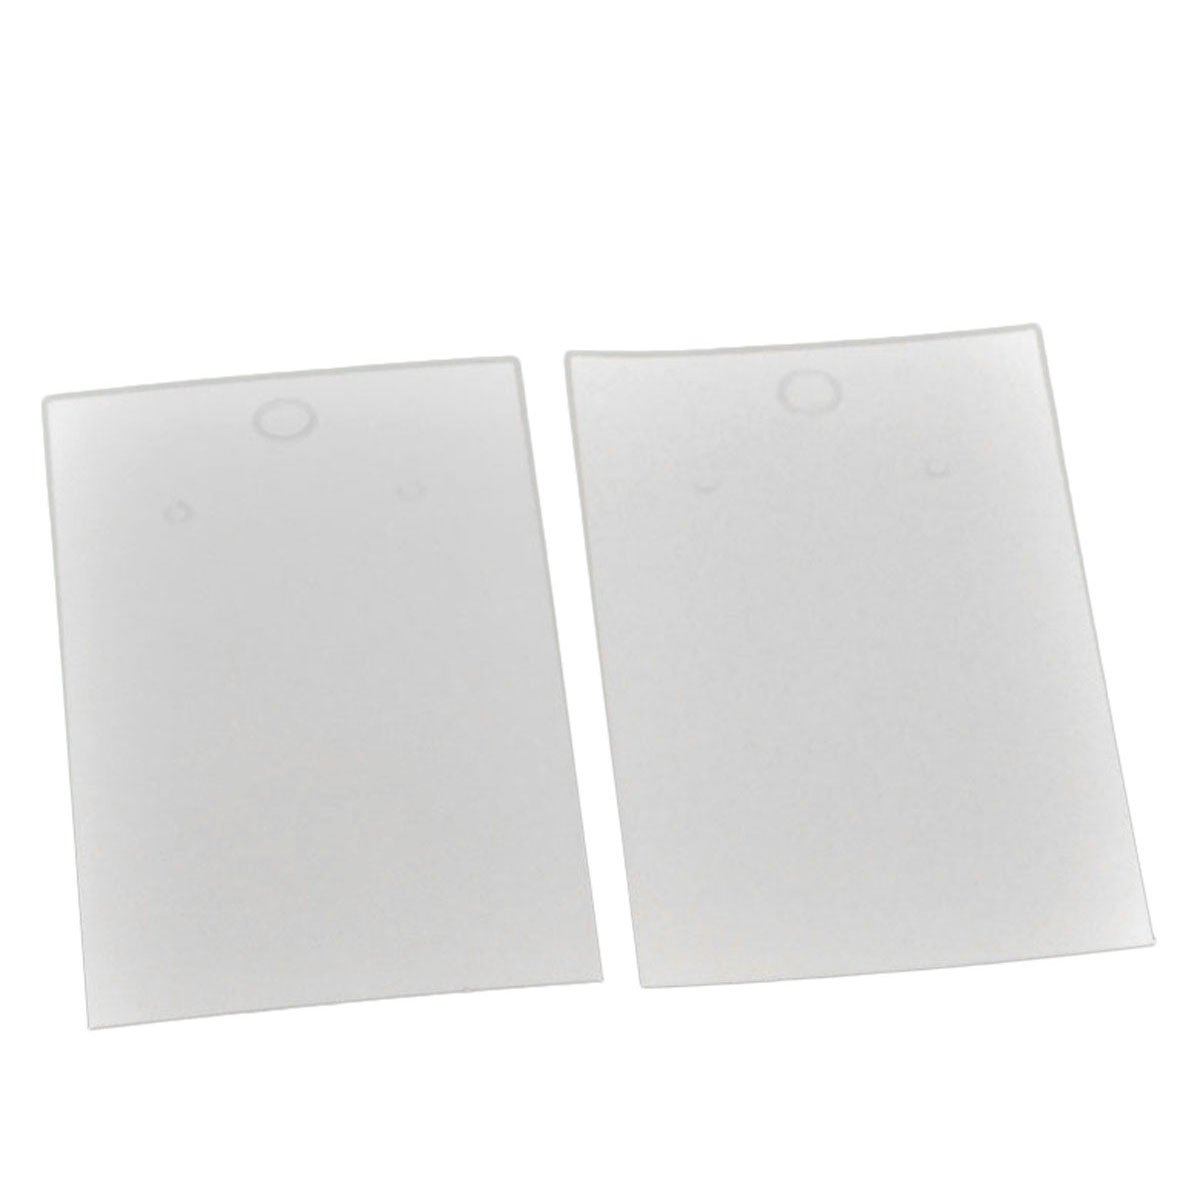 HOUSWEETY 100PCs White Earrings Jewelery Display Cards 9x5cm(3 4/8x2) HOUSWEETYB20834-JC